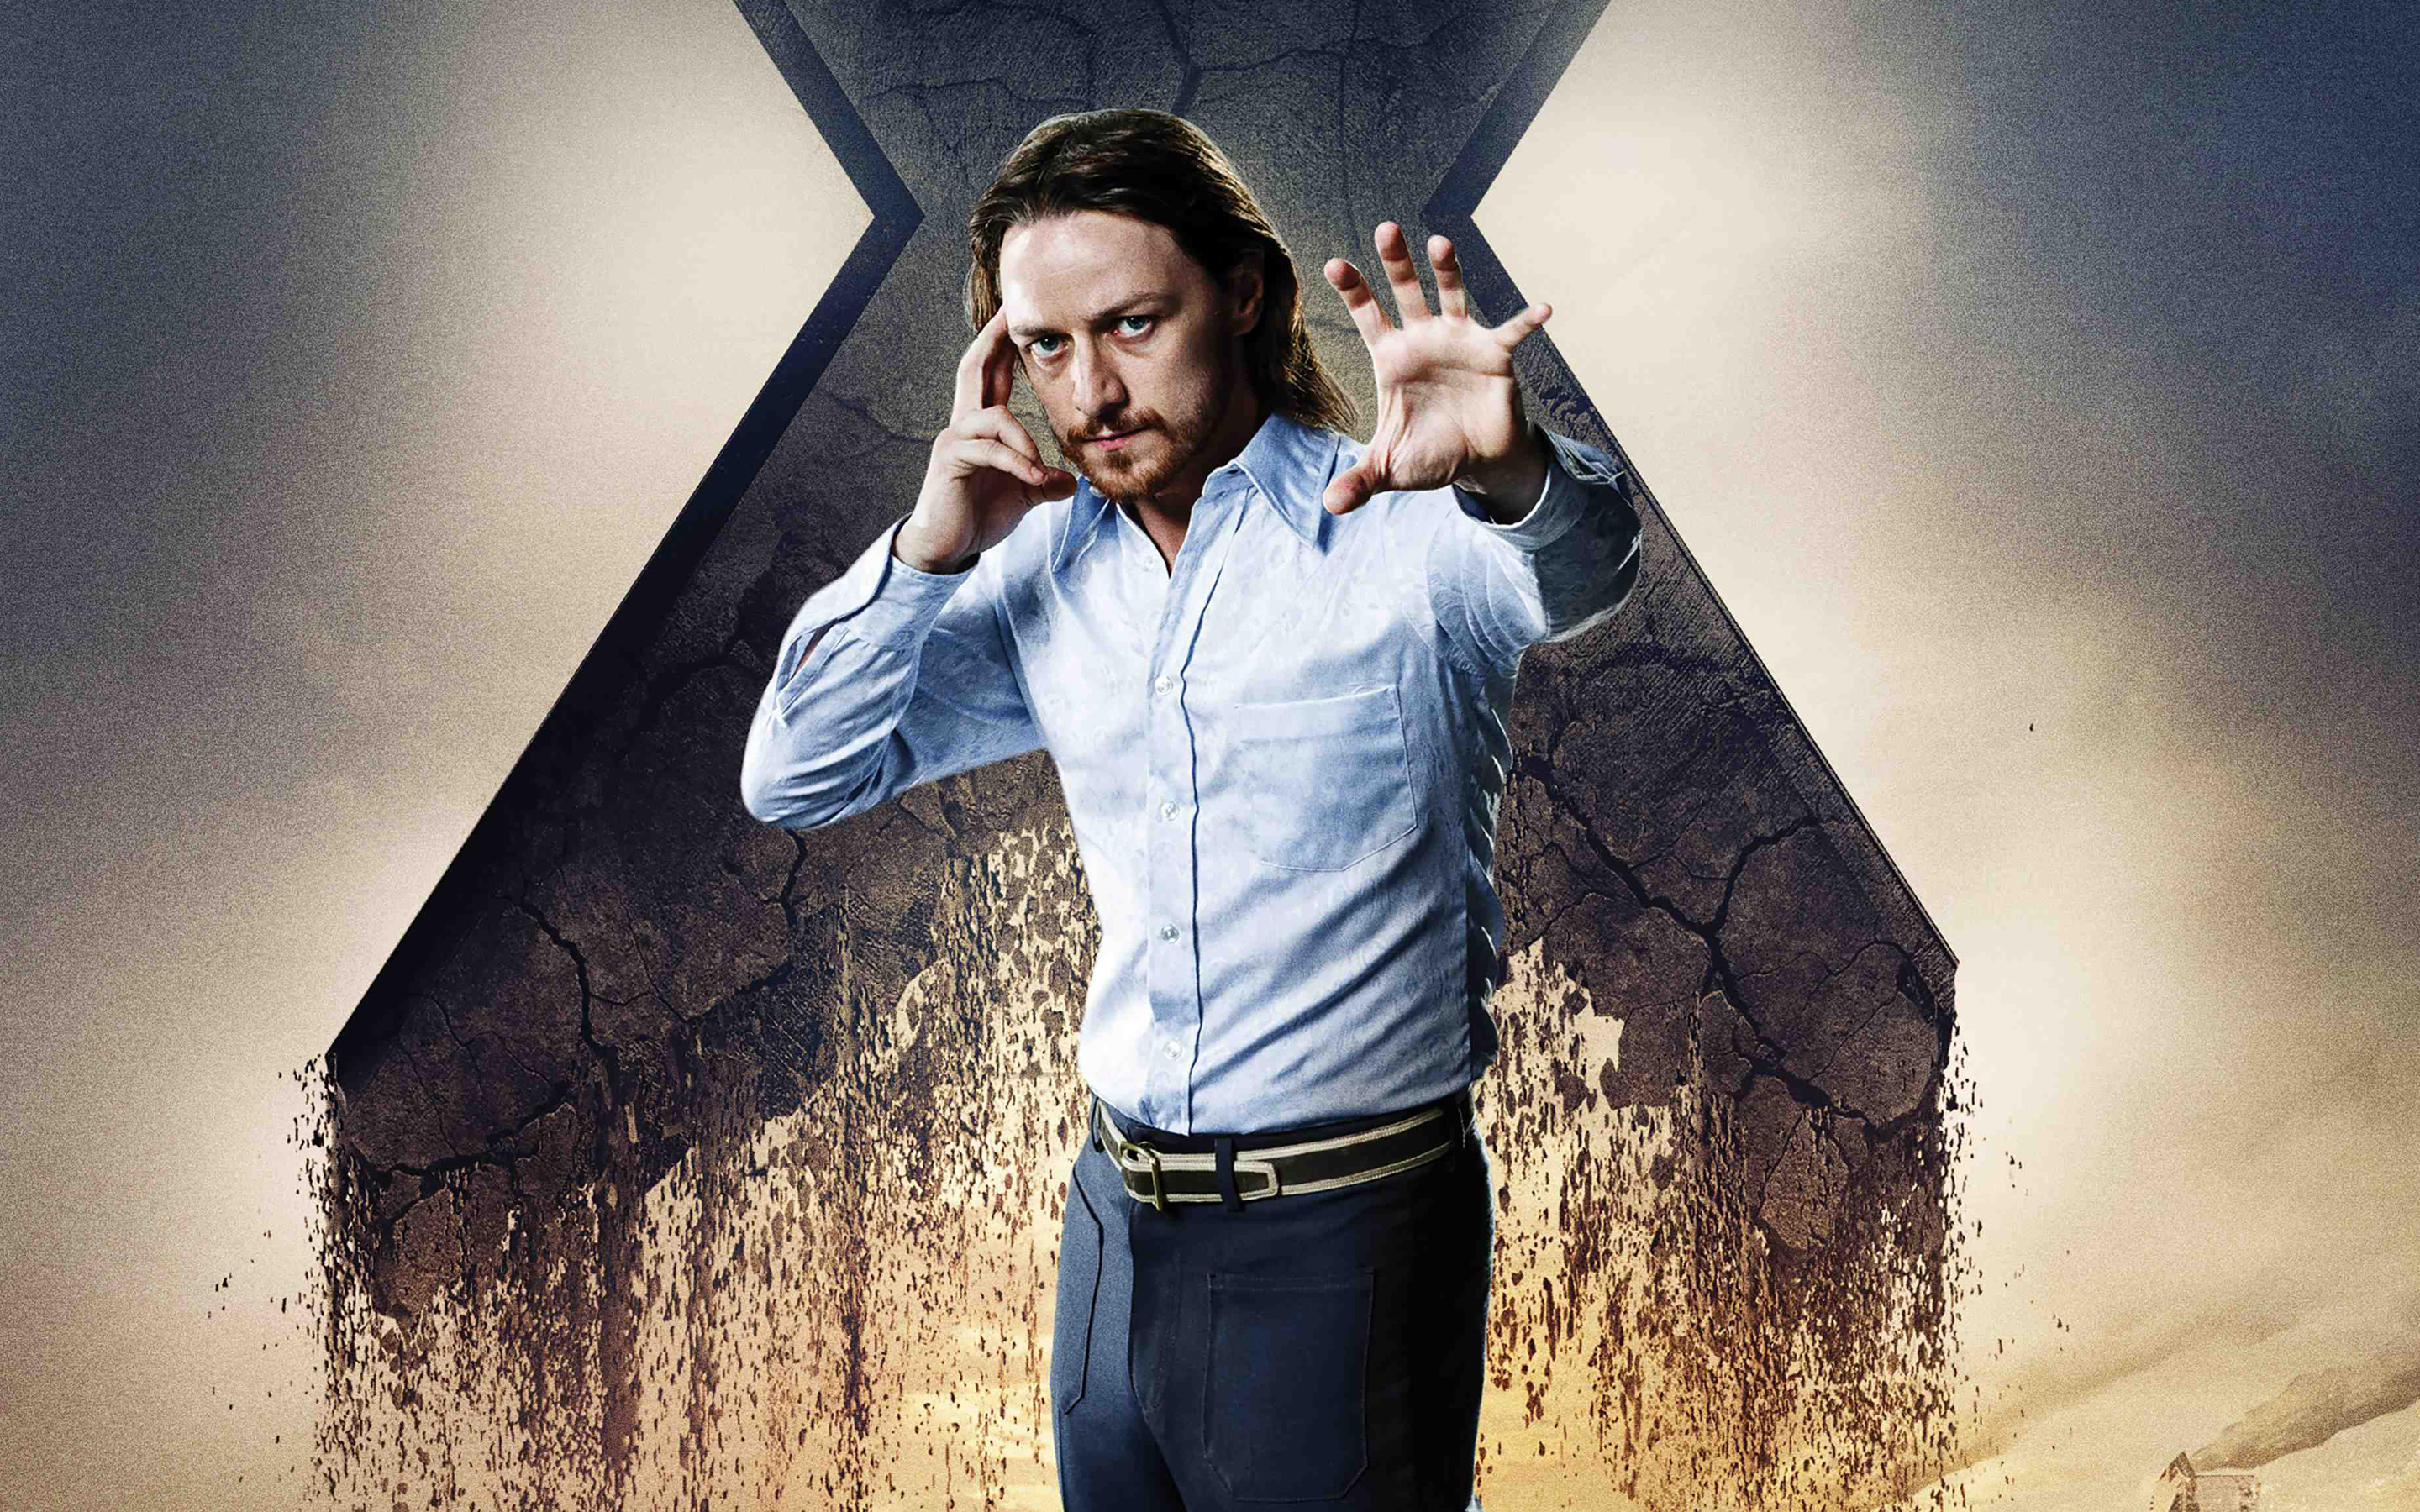 James McAvoy as  Charles Xavier 337.97 Kb